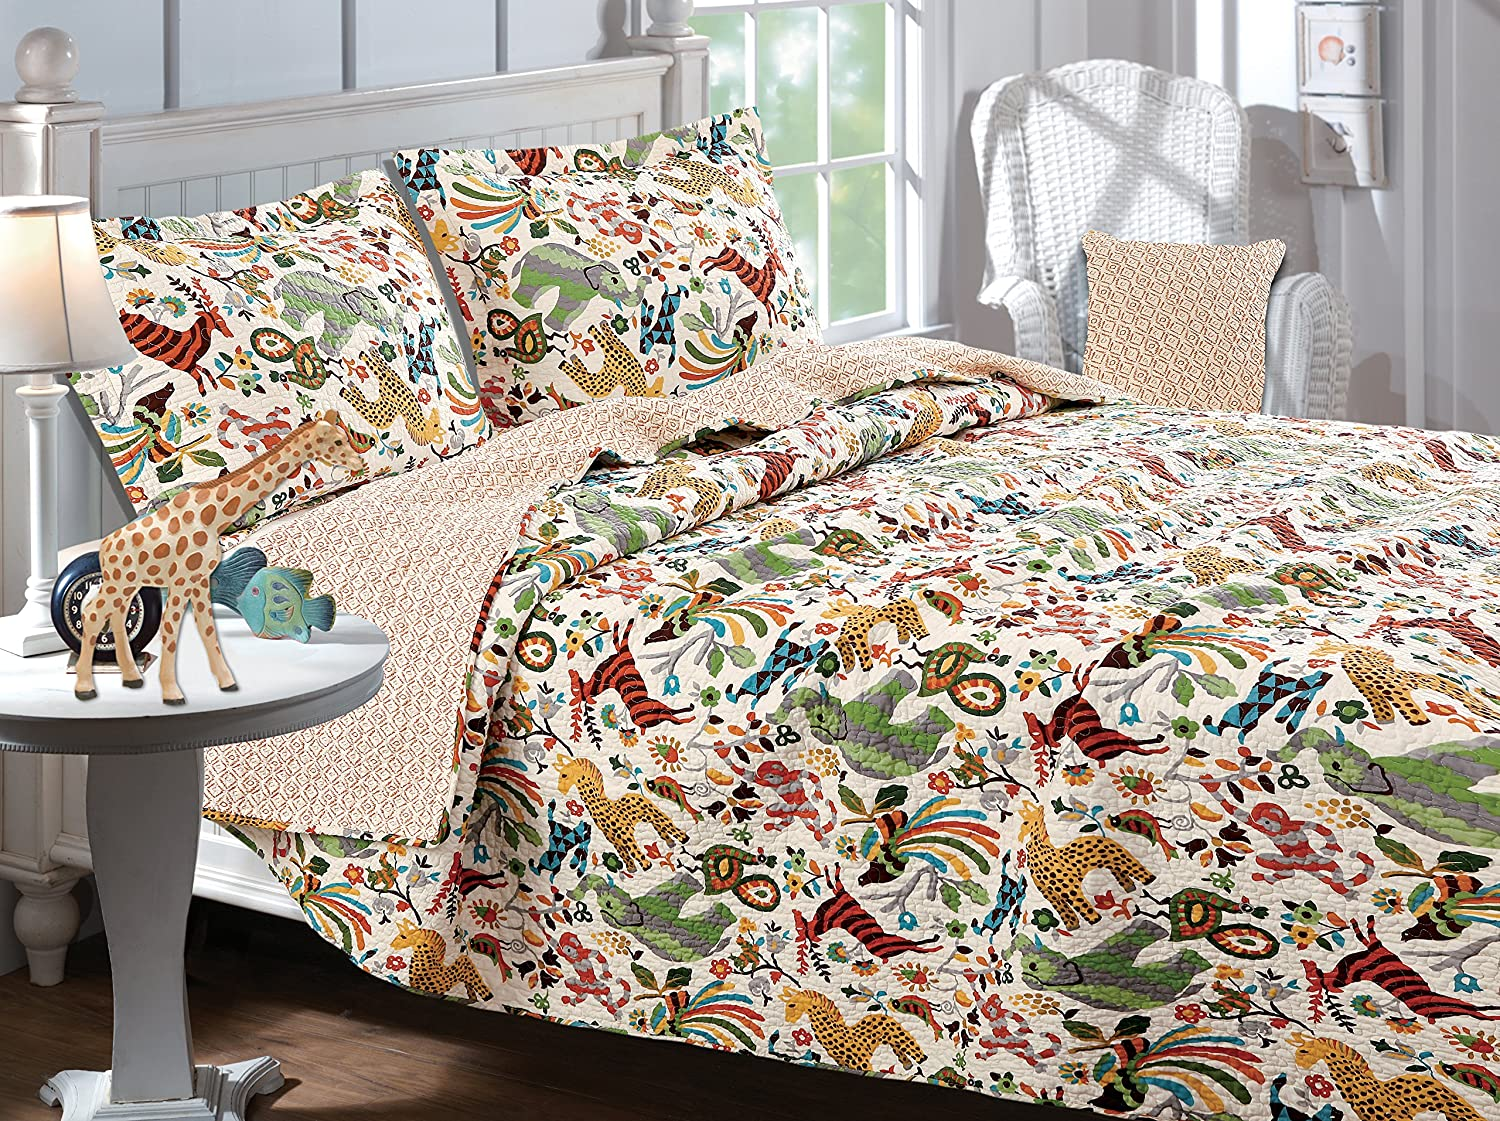 Greenland Home Safari Park Quilt Set, 3 Piece, Full/Queen